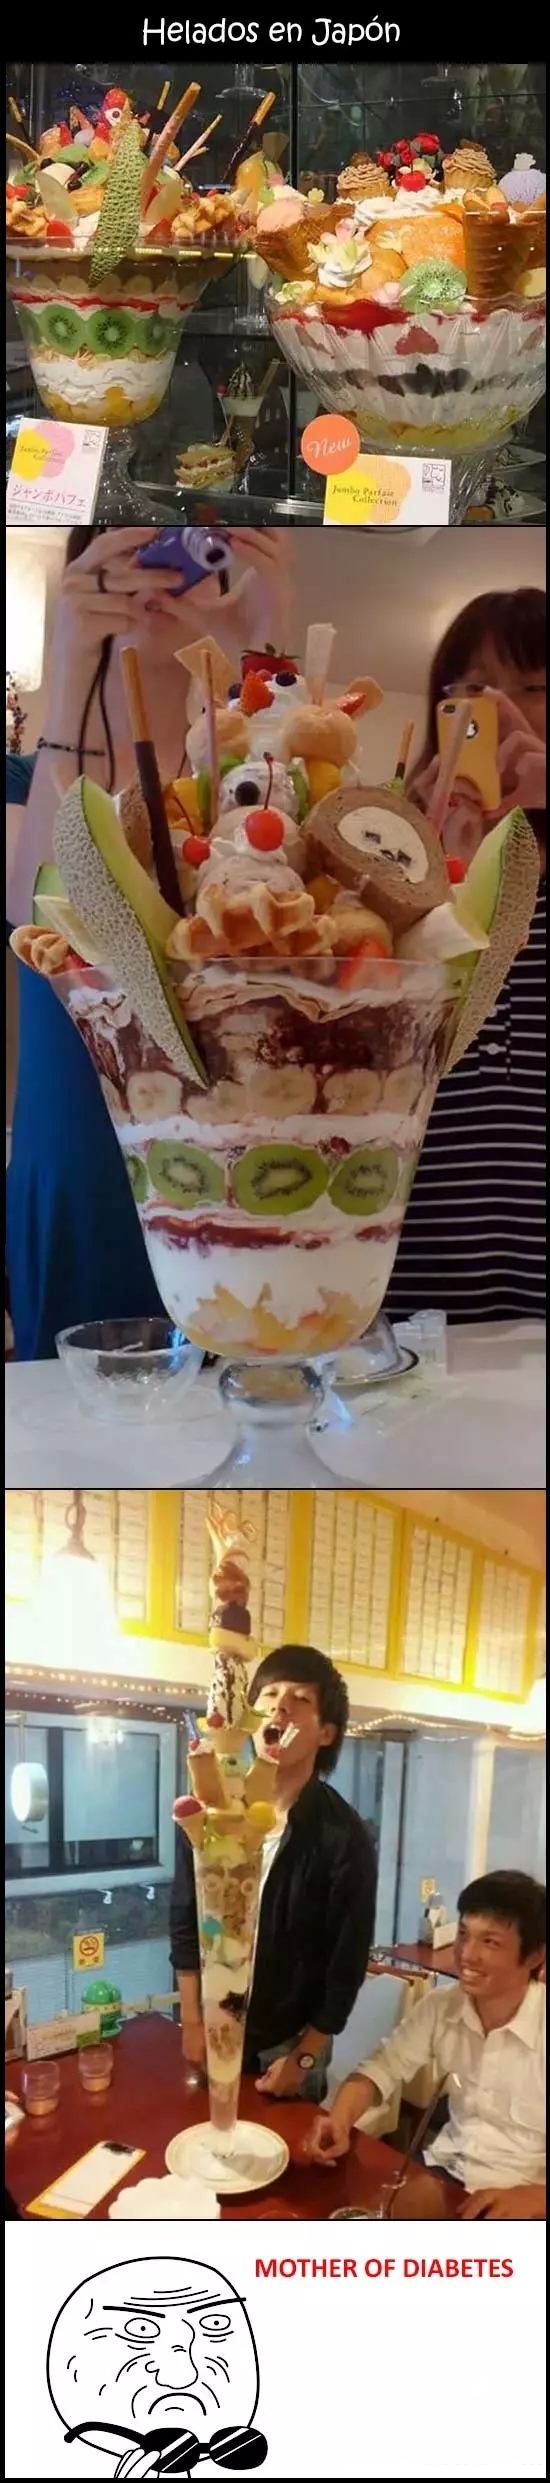 Mother_of_god - Los helados japoneses, otra cosa en la que nos superan